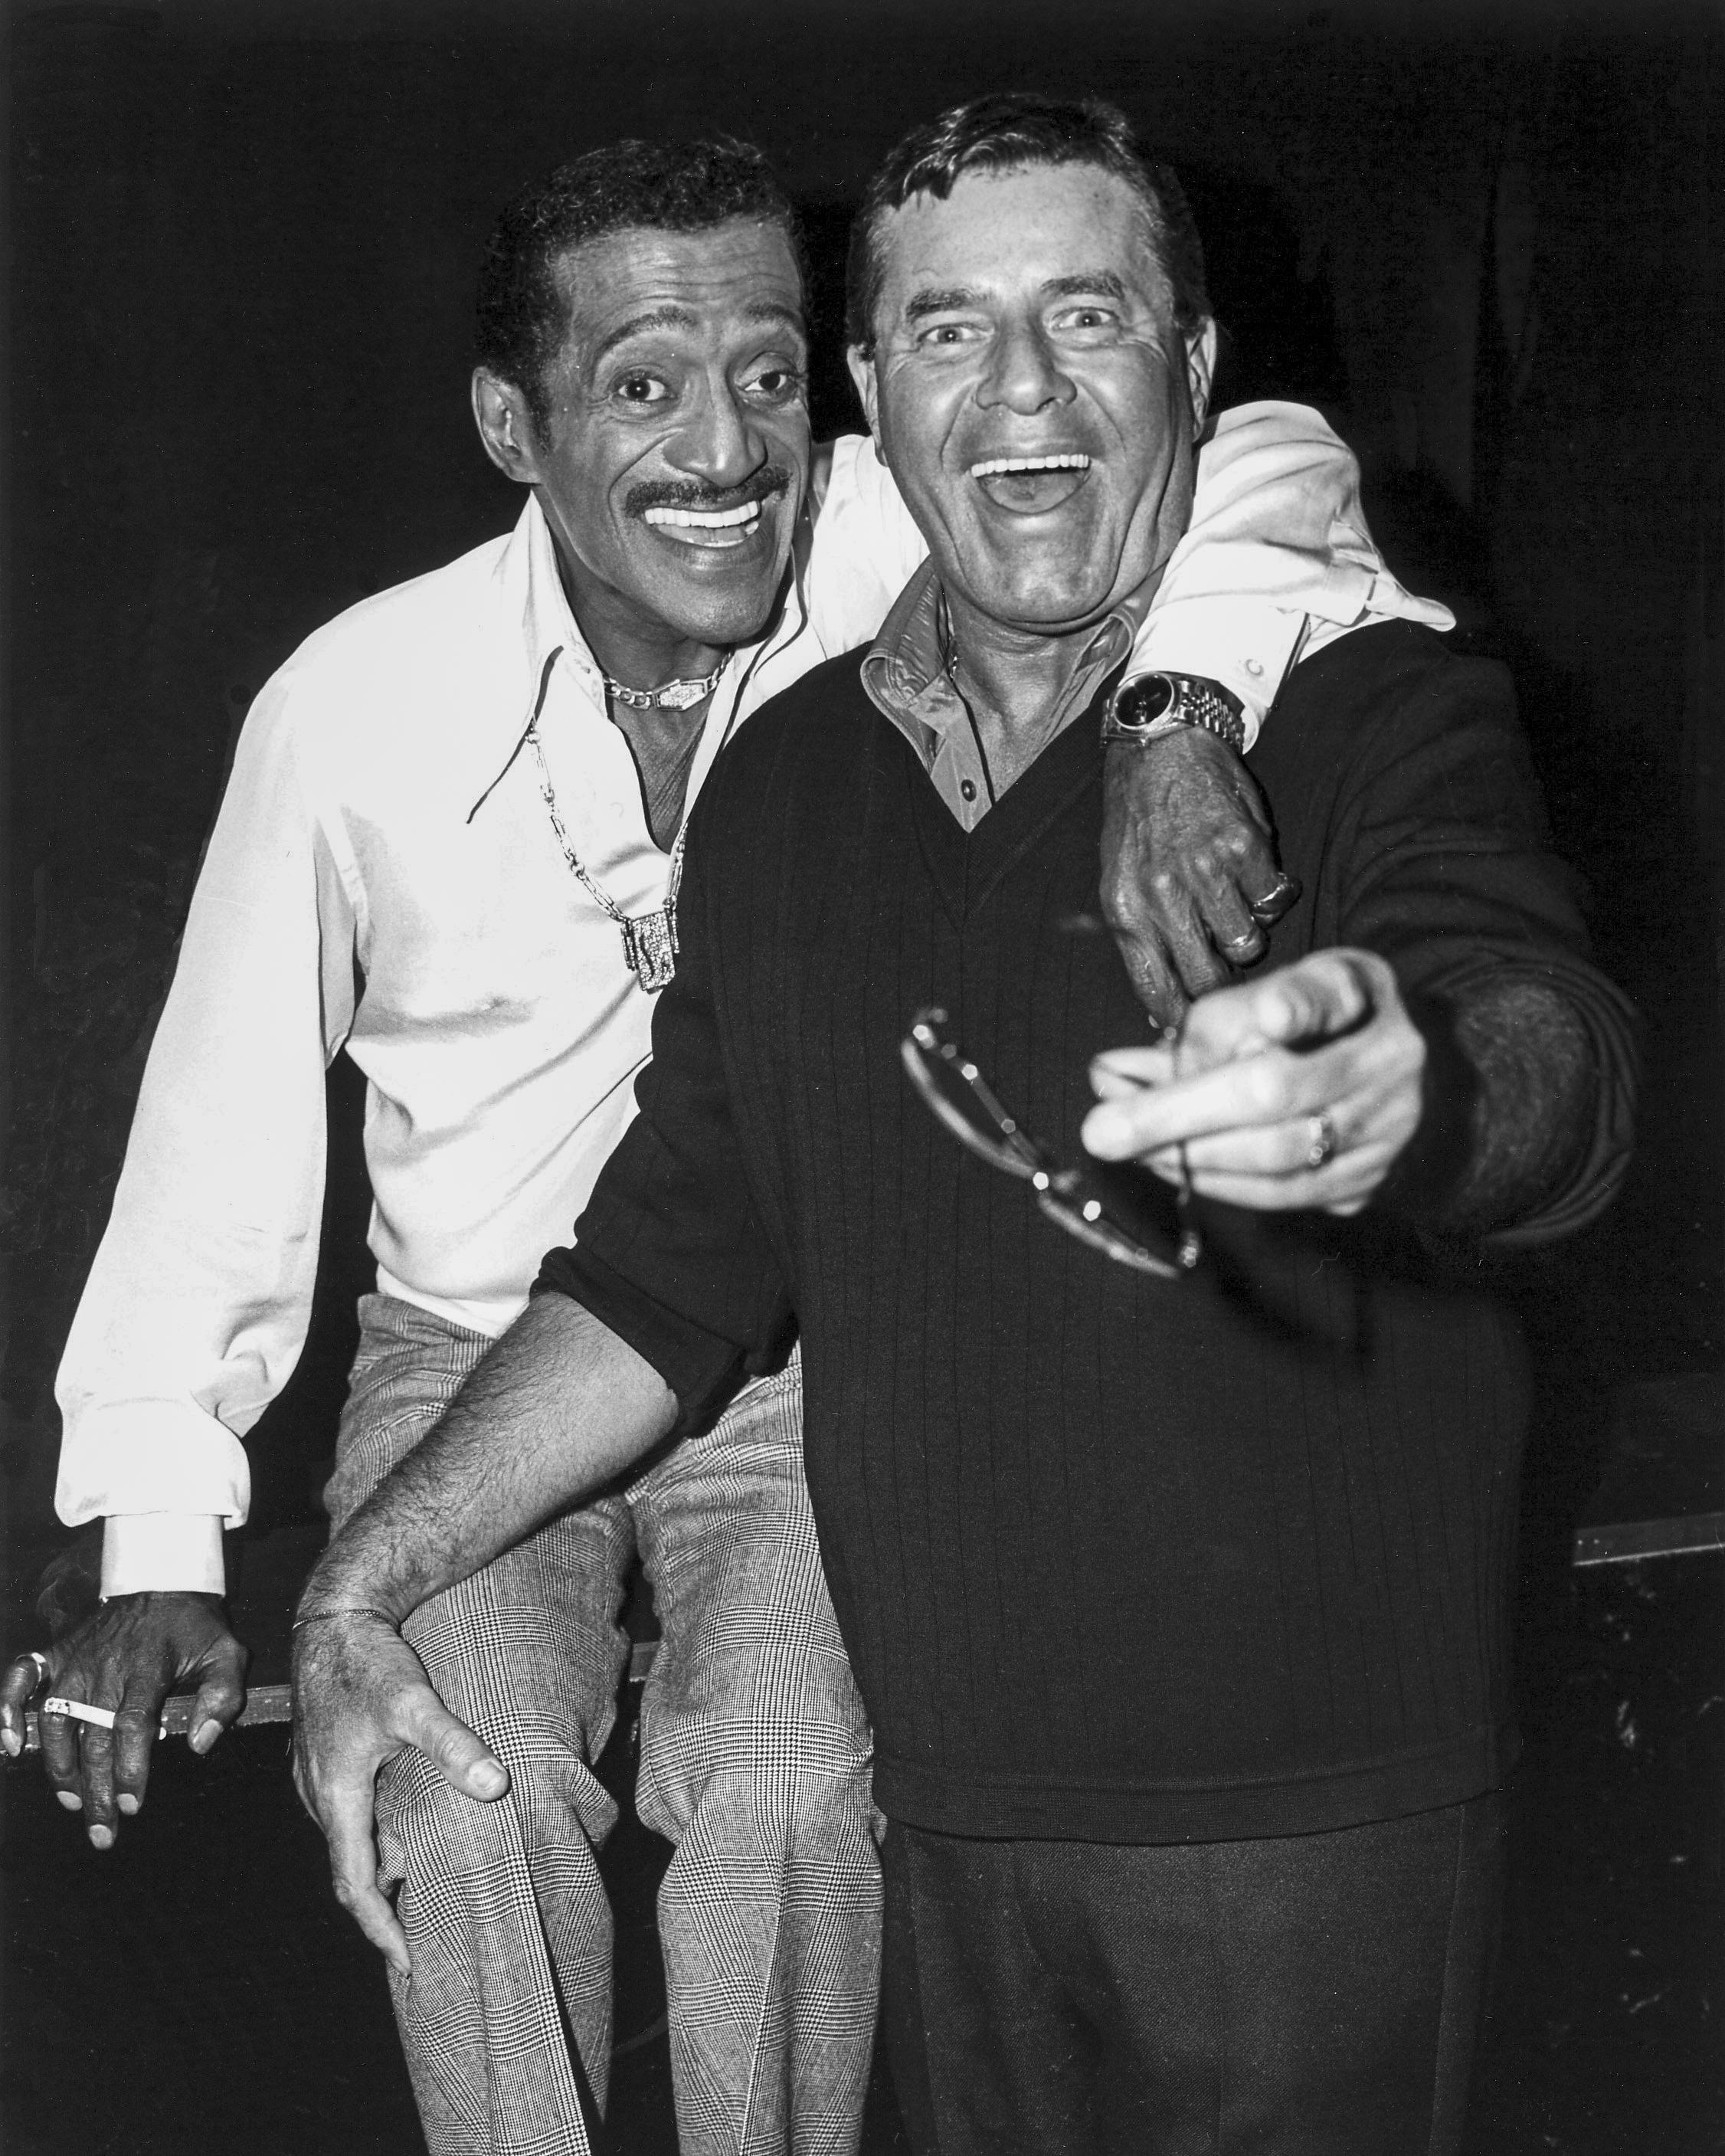 5/19/1986  Jerry Lewis and Sammy Davis Jr at the Desert Inn. CREDIT: Las Vegas News Bureau